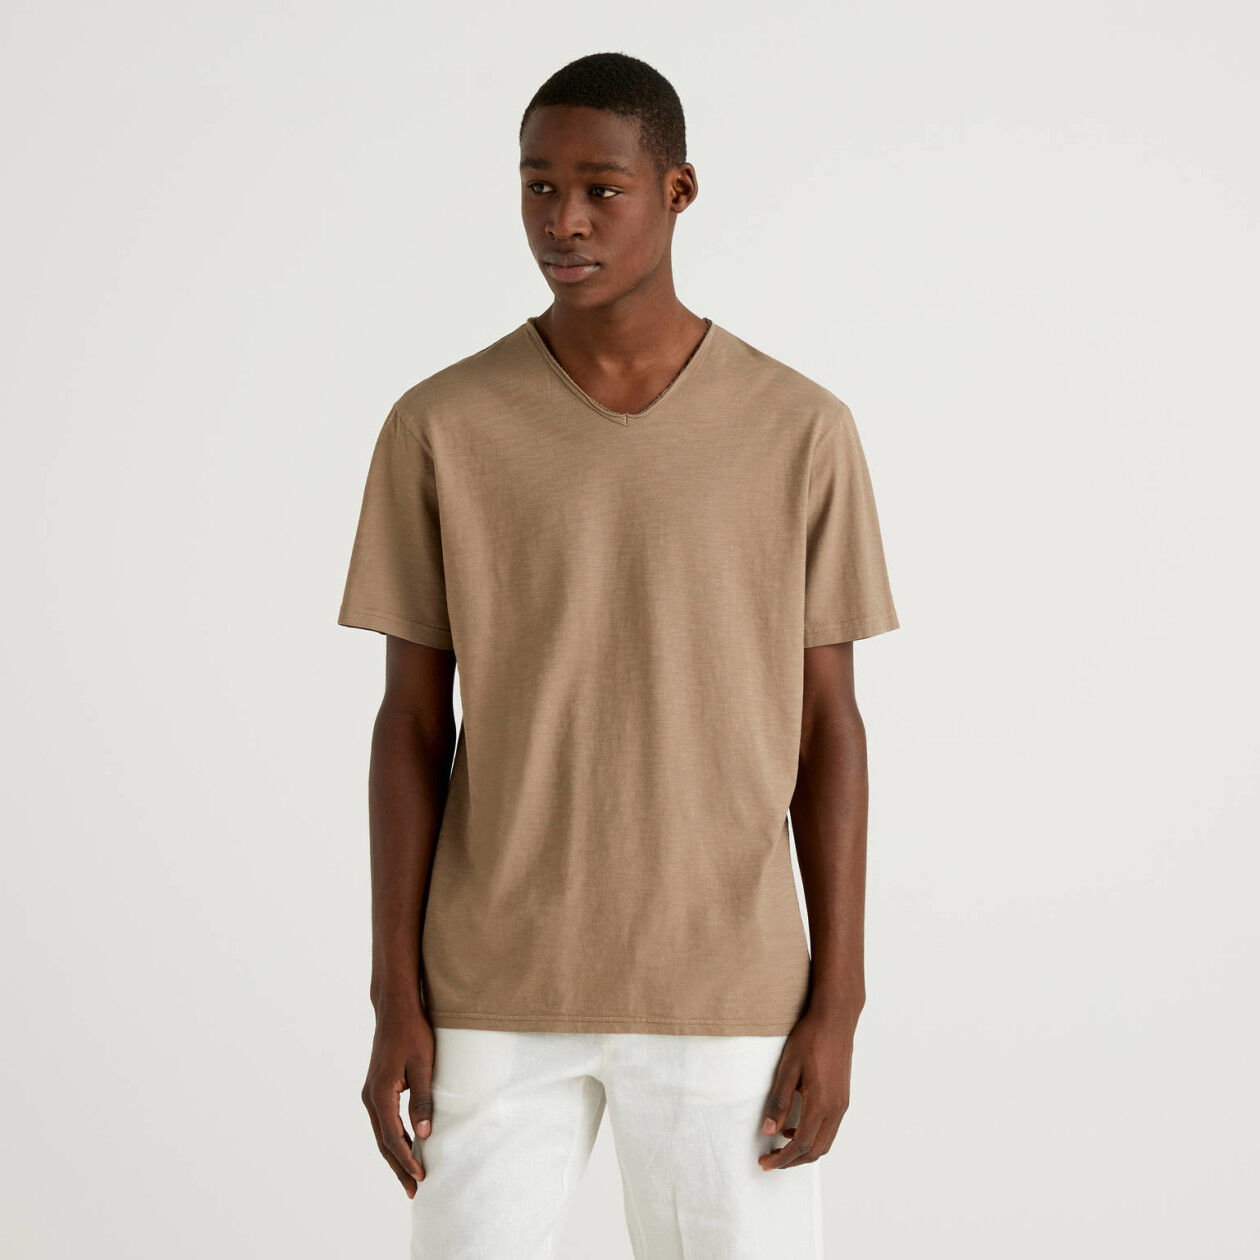 100% cotton t-shirt with V-neck